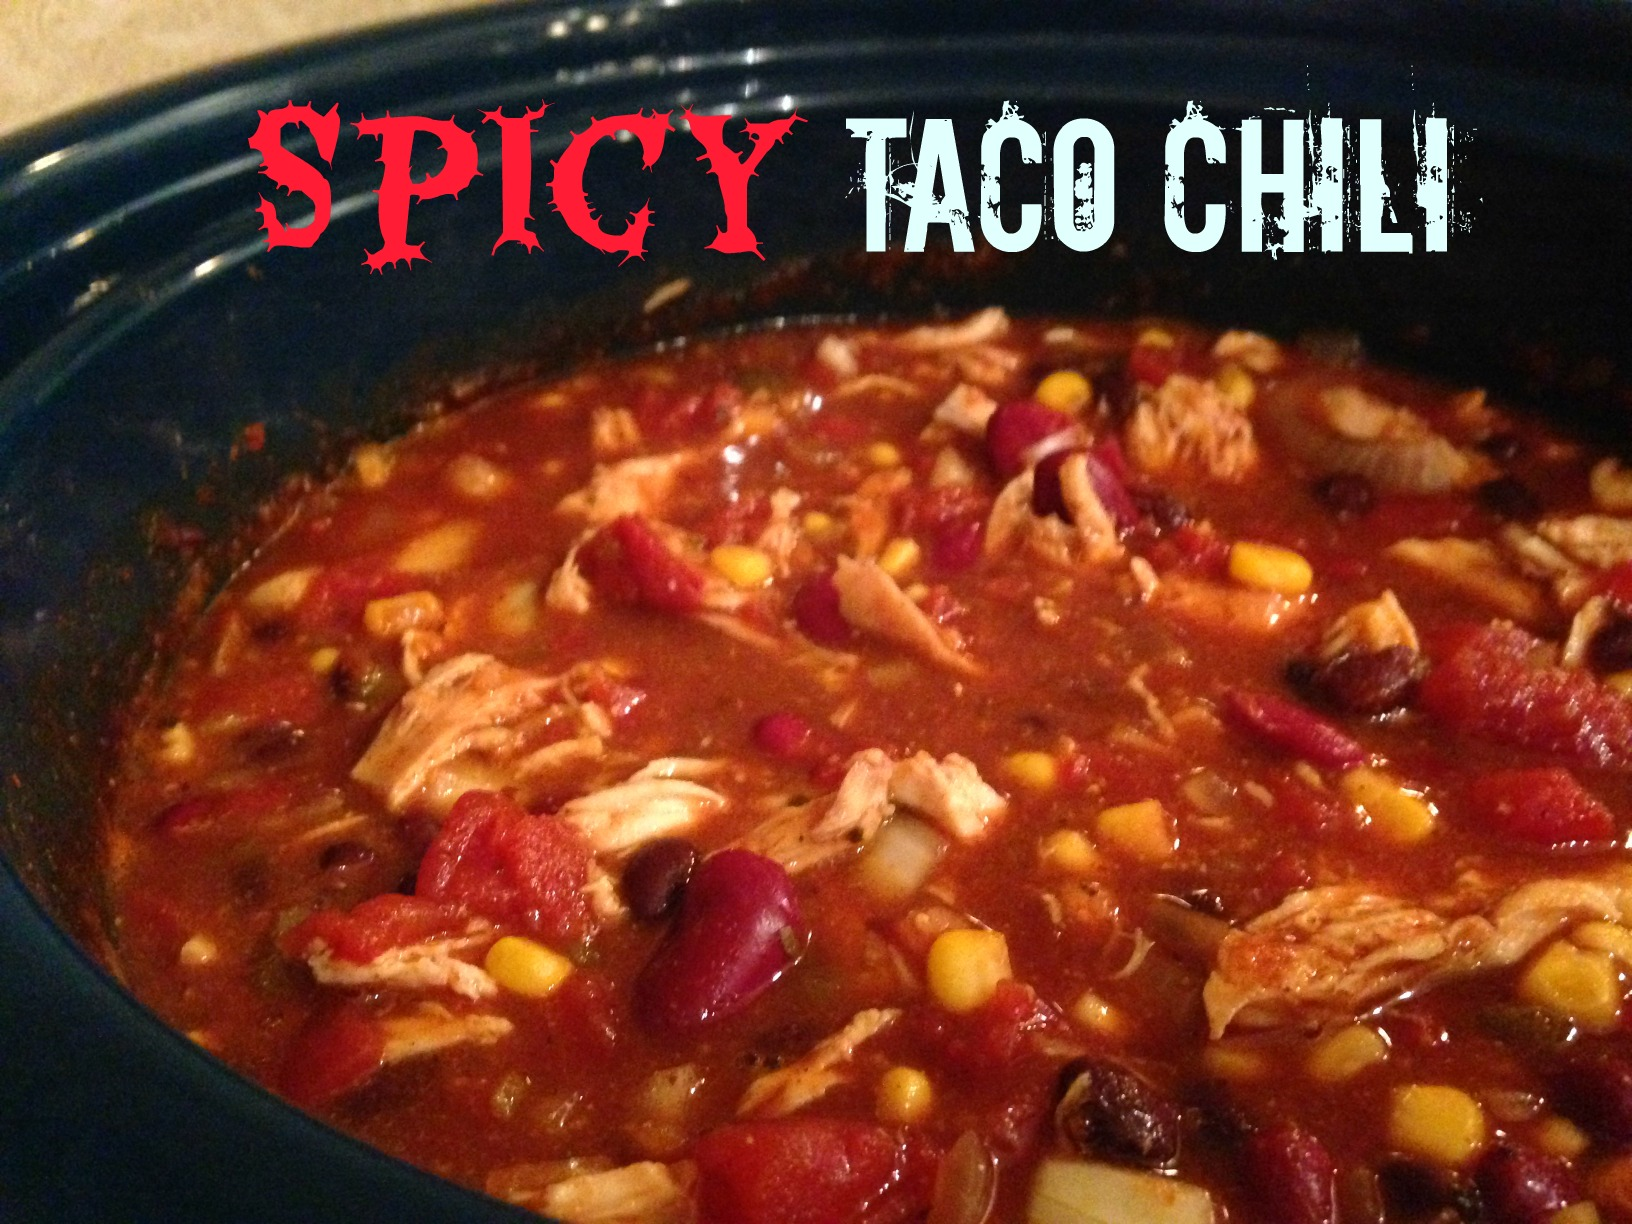 Slow Cooked Spicy Taco Chili